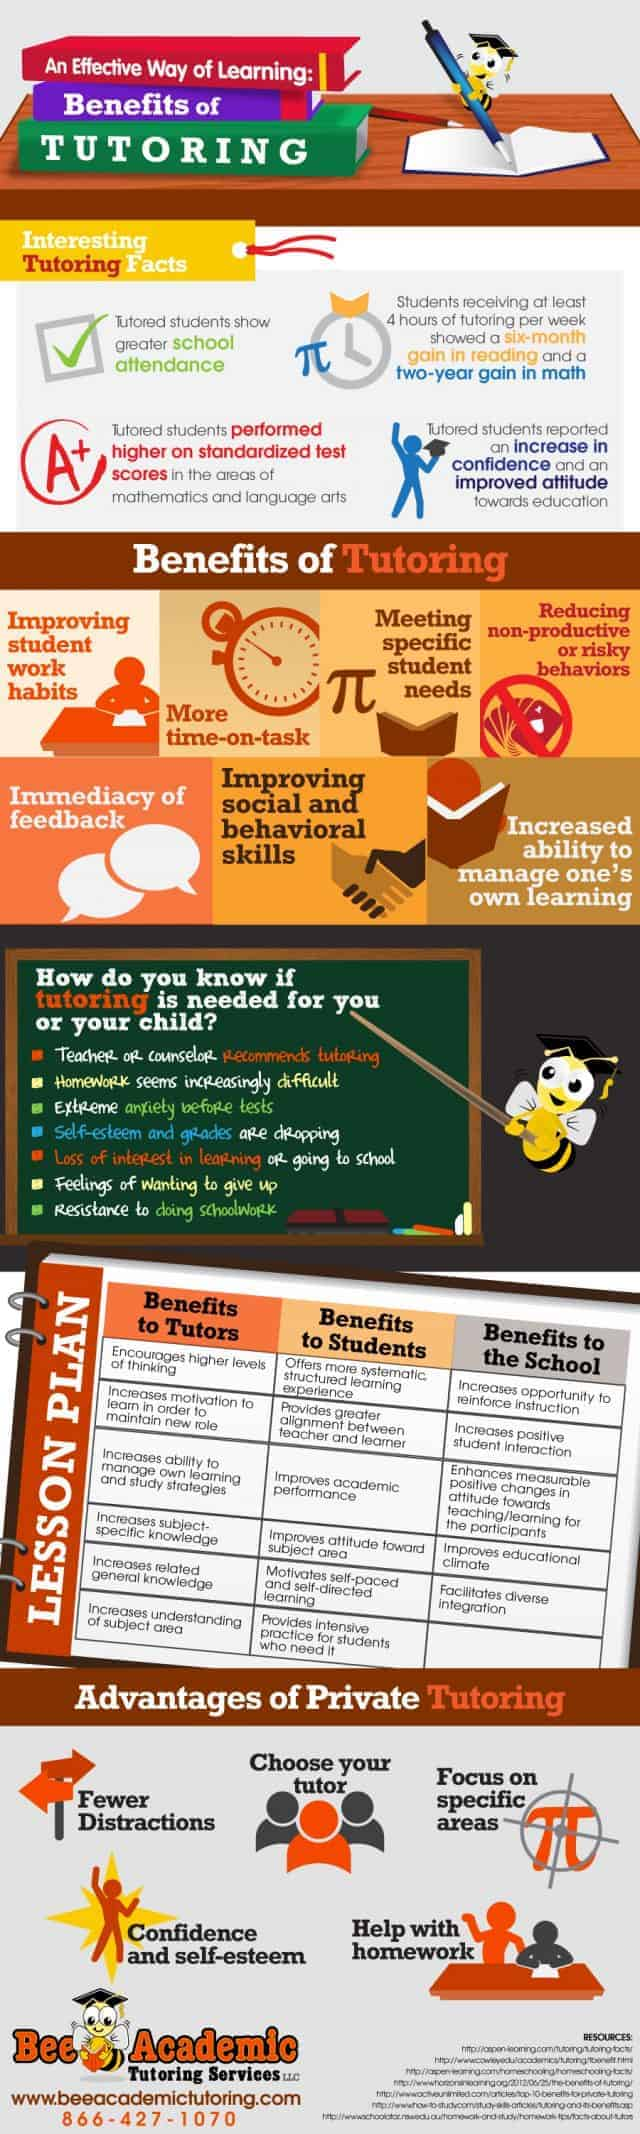 tutoring-infographic-640x2134